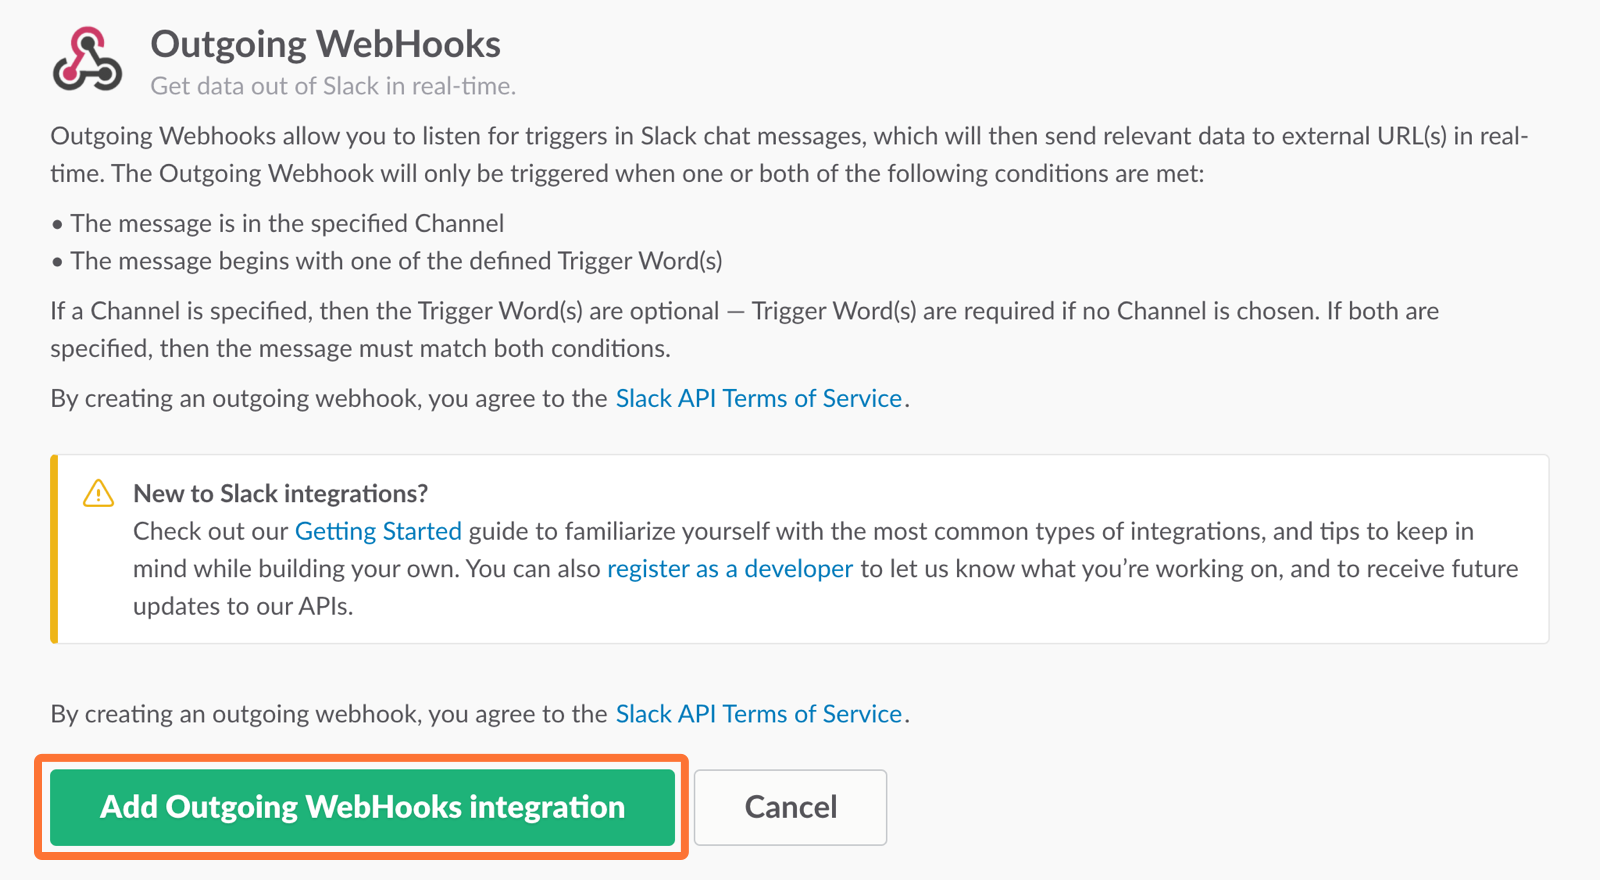 Add Outgoing WebHooks Integration